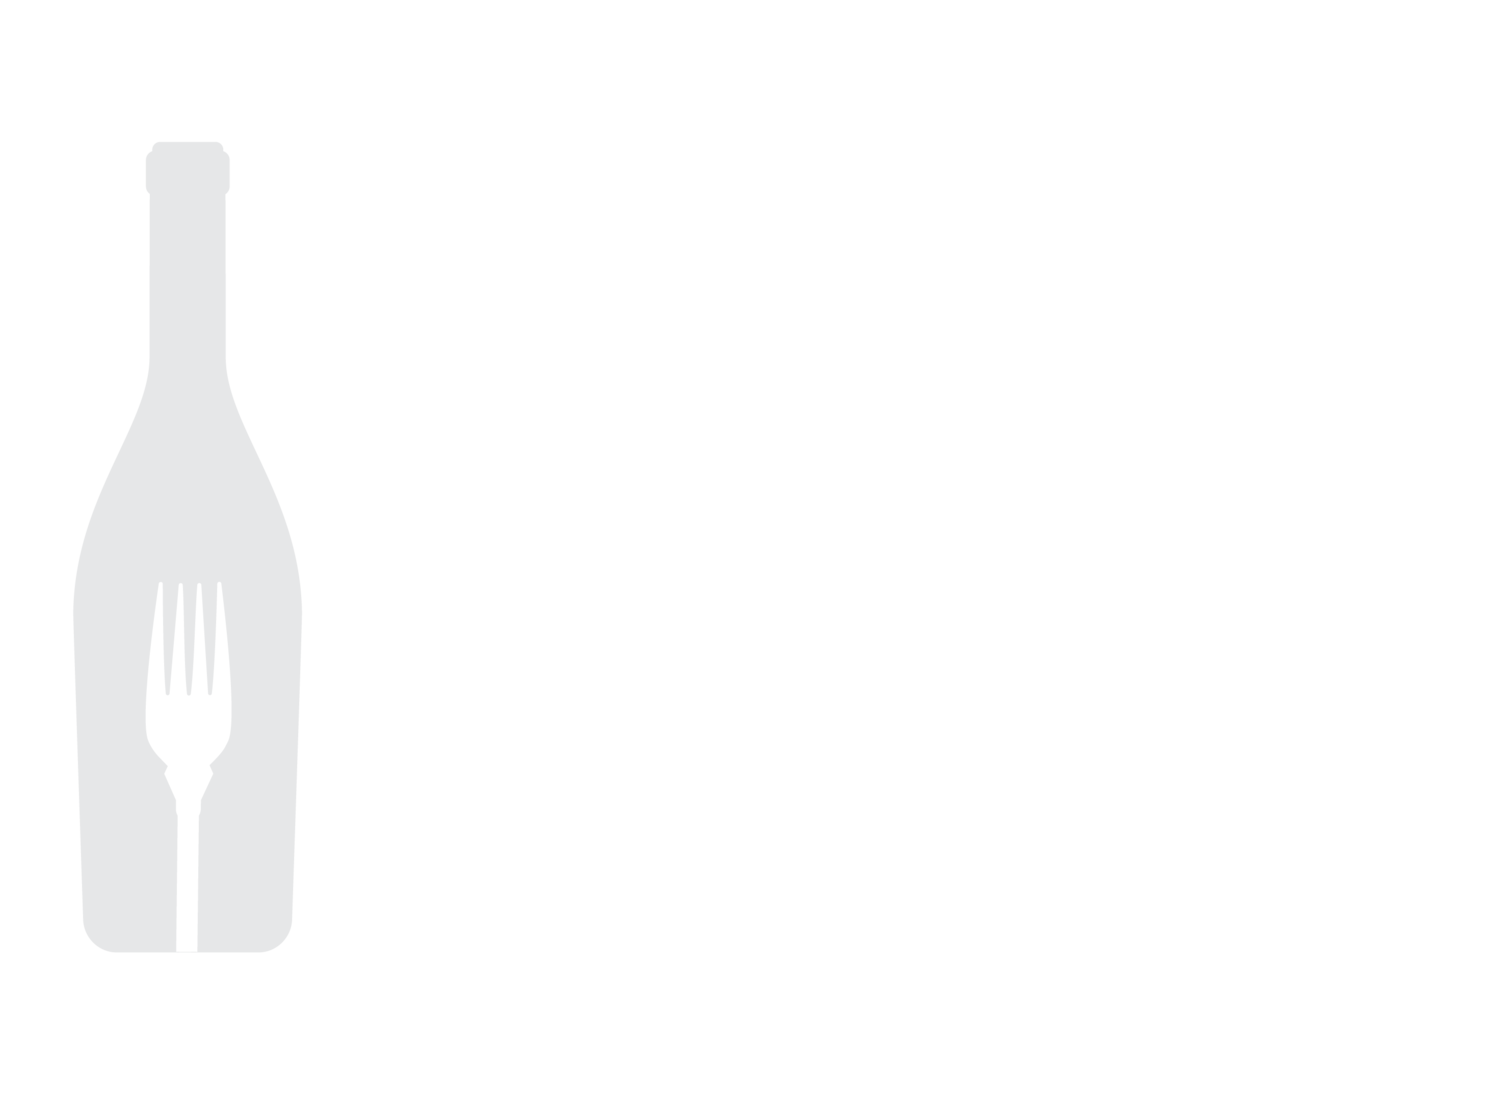 District Seven